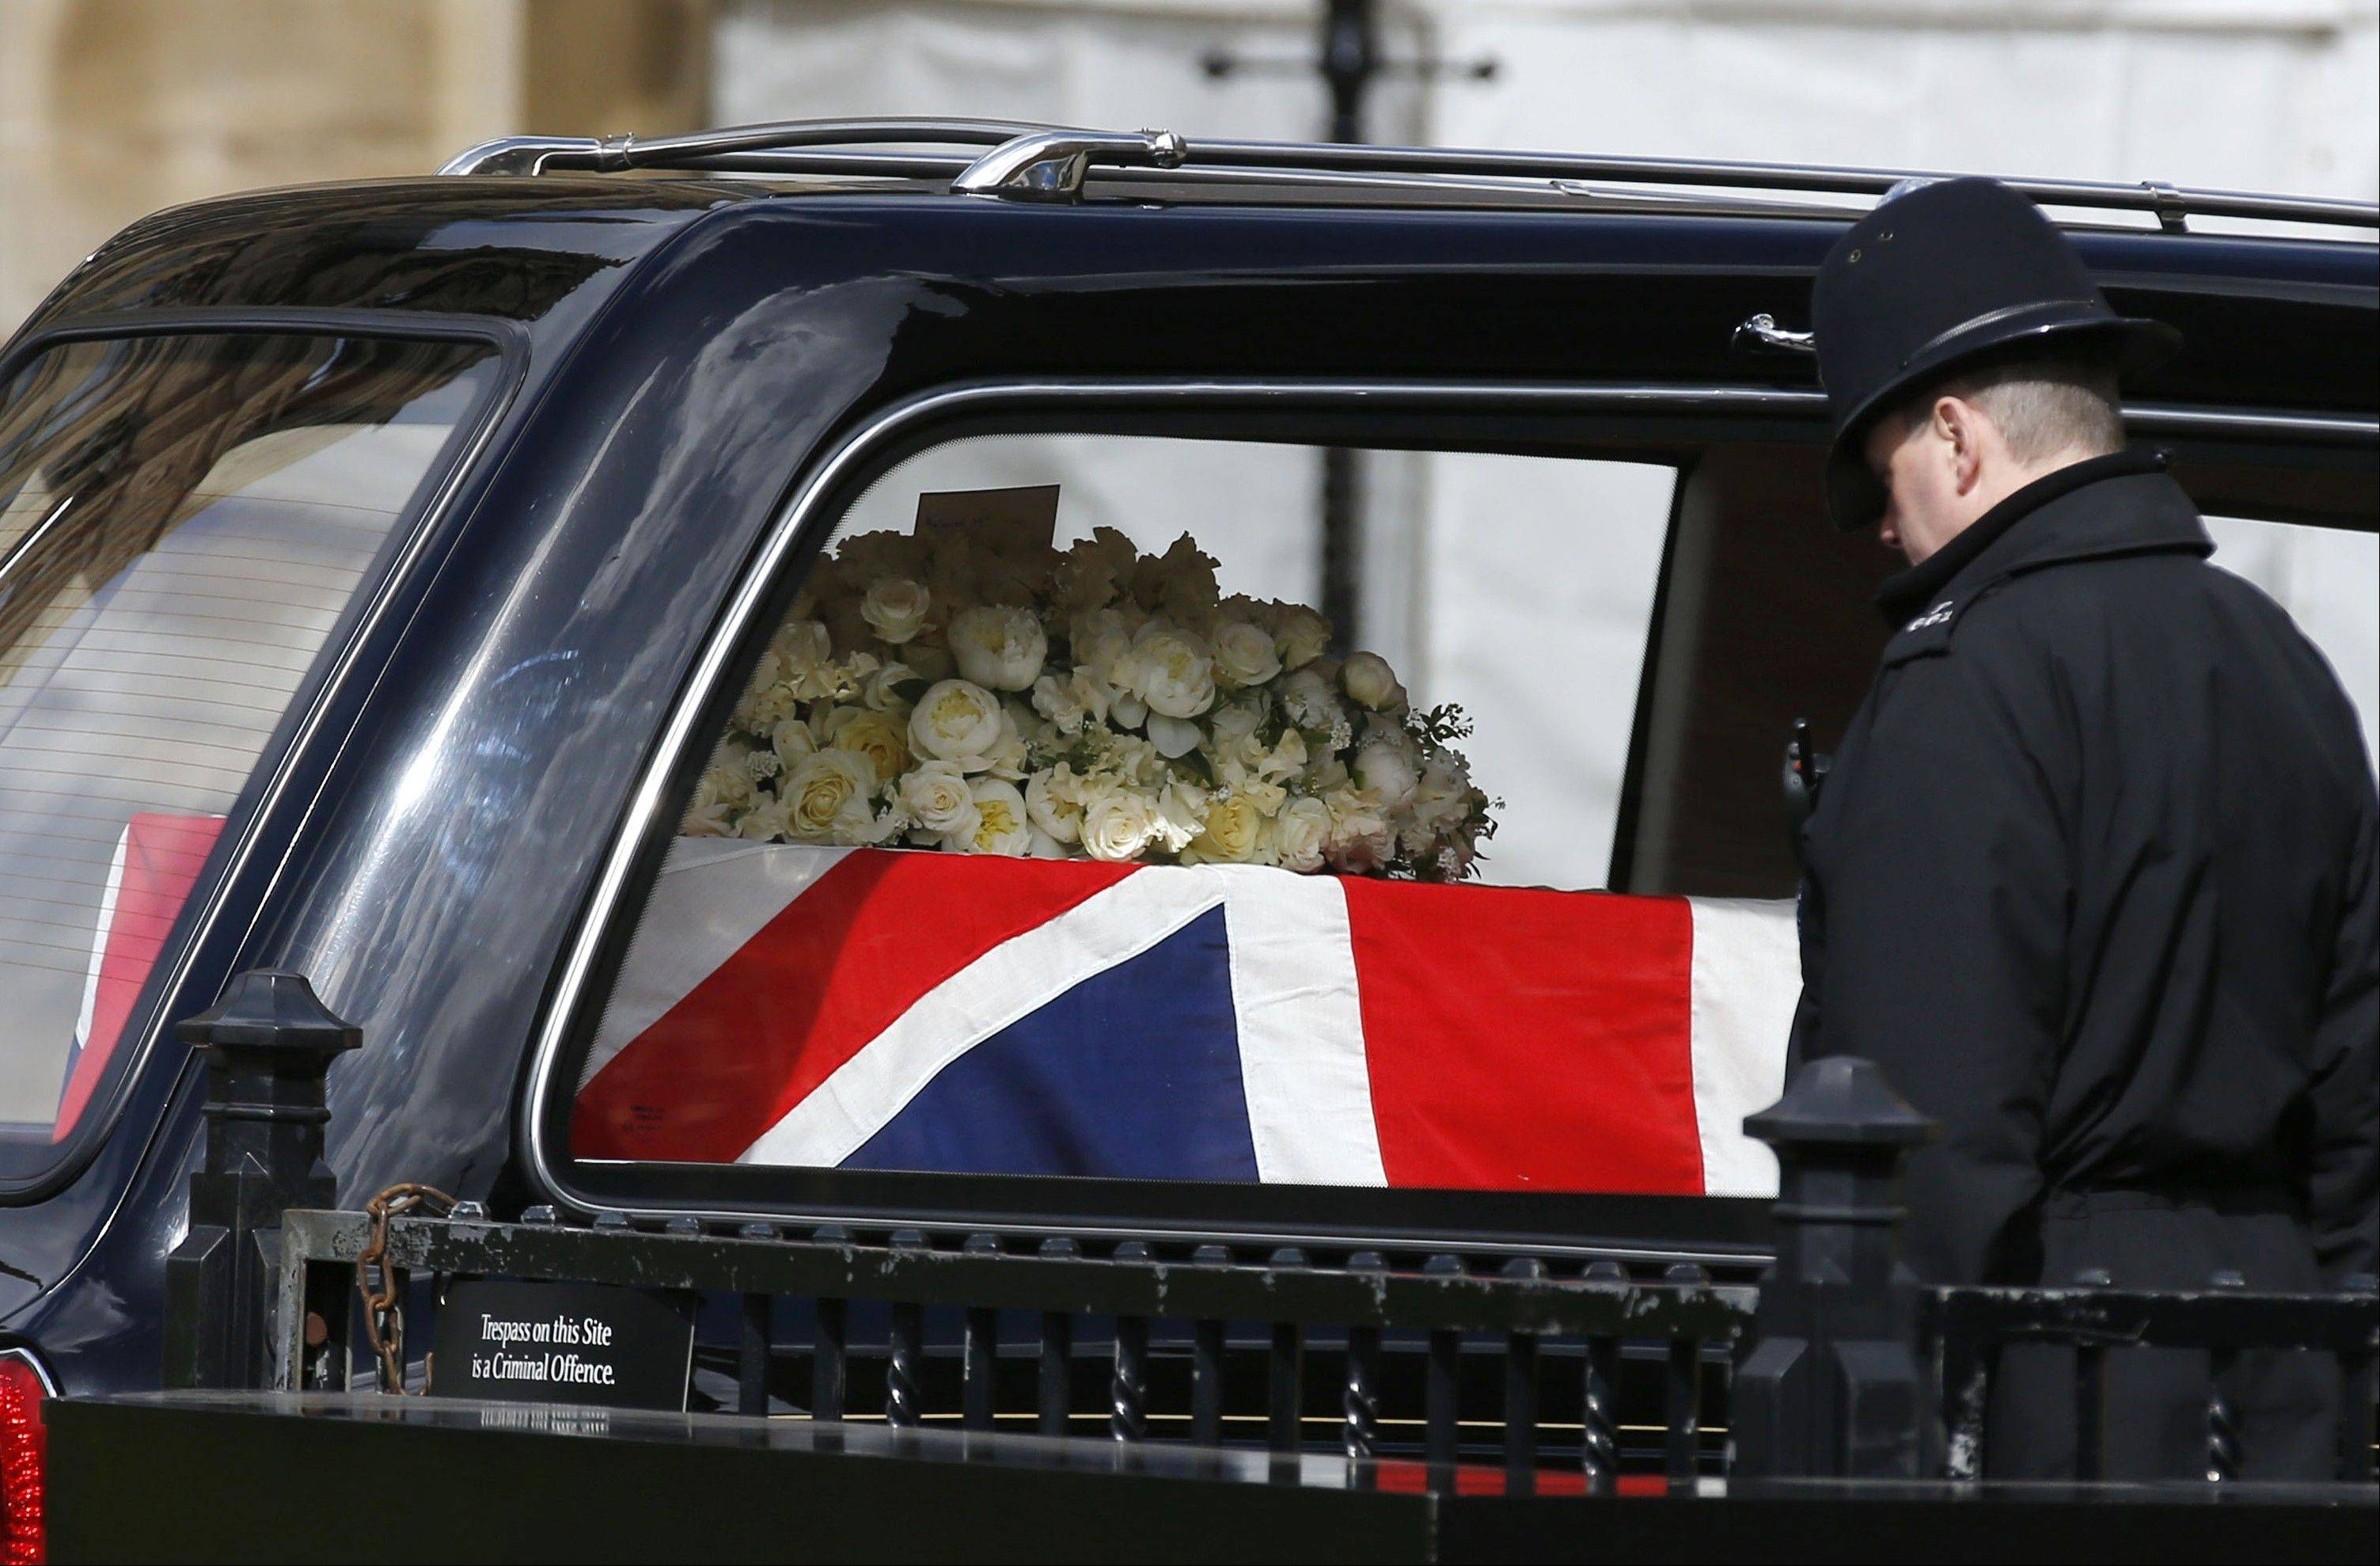 A British police officer bows his head as the Union flag draped coffin holding the body of former British Prime Minister Margaret Thatcher arrives in a hearse at the Houses of Parliament in London to rest overnight before her funeral the next day, Tuesday, April 16, 2013. About 100 colleagues and senior politicians will attend a private service in Parliament�s chapel of St. Mary Undercroft later Tuesday. The Iron Lady, who transformed Britain during her 11-year tenure, died April 8, aged 87.